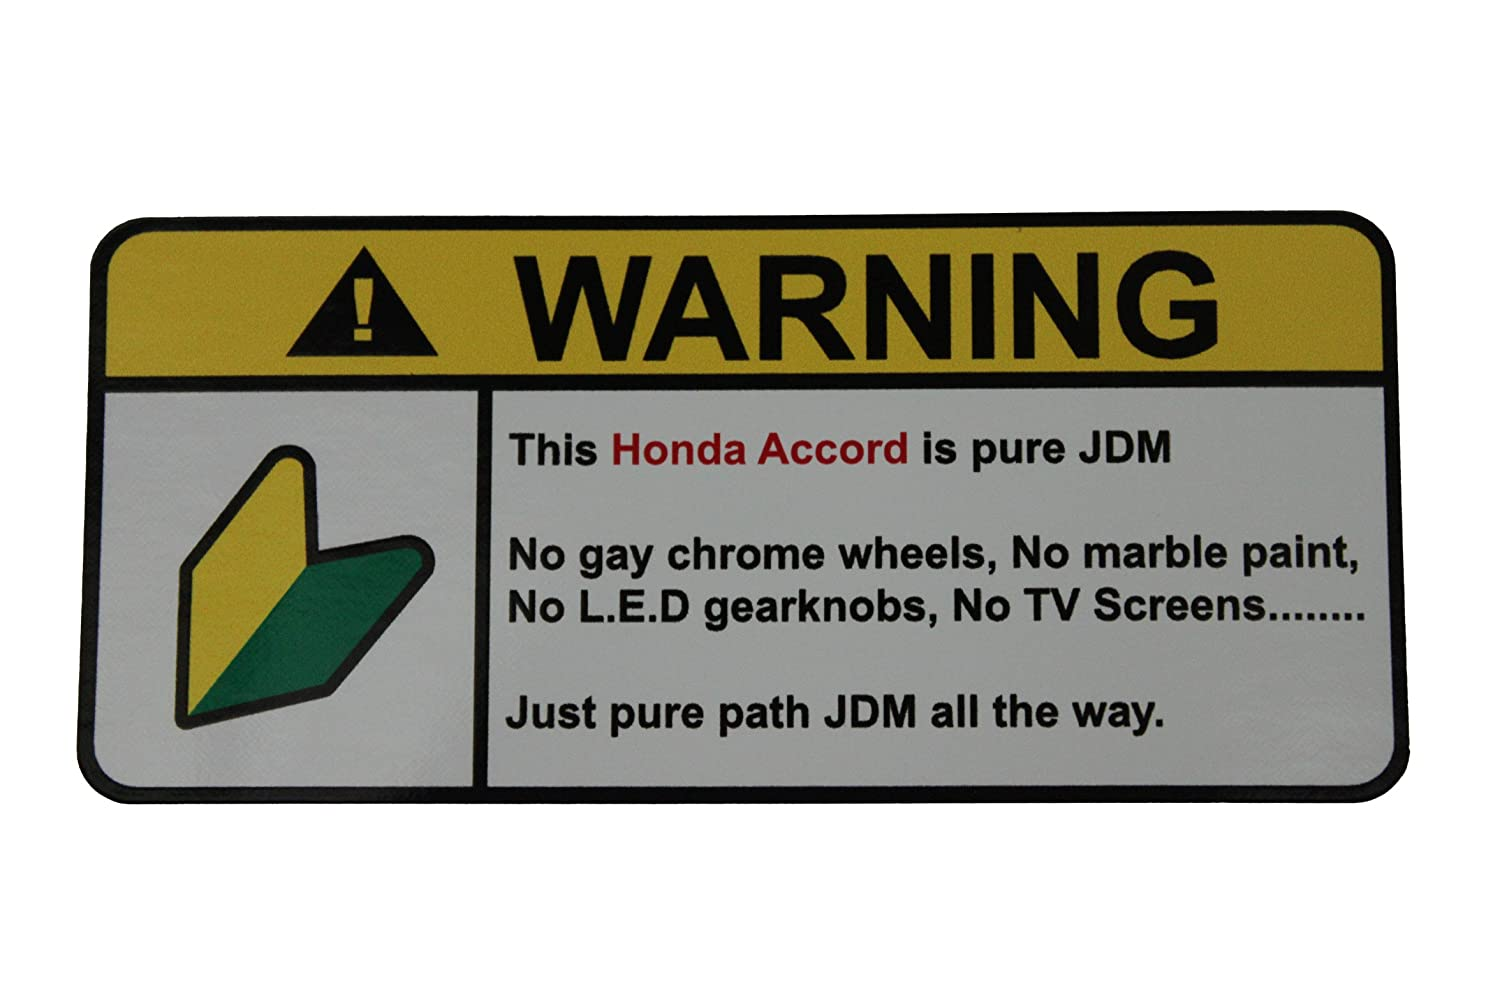 Amazoncom Honda Accord Pure JDM Warning Decal Sticker Automotive - Honda accord decals stickers